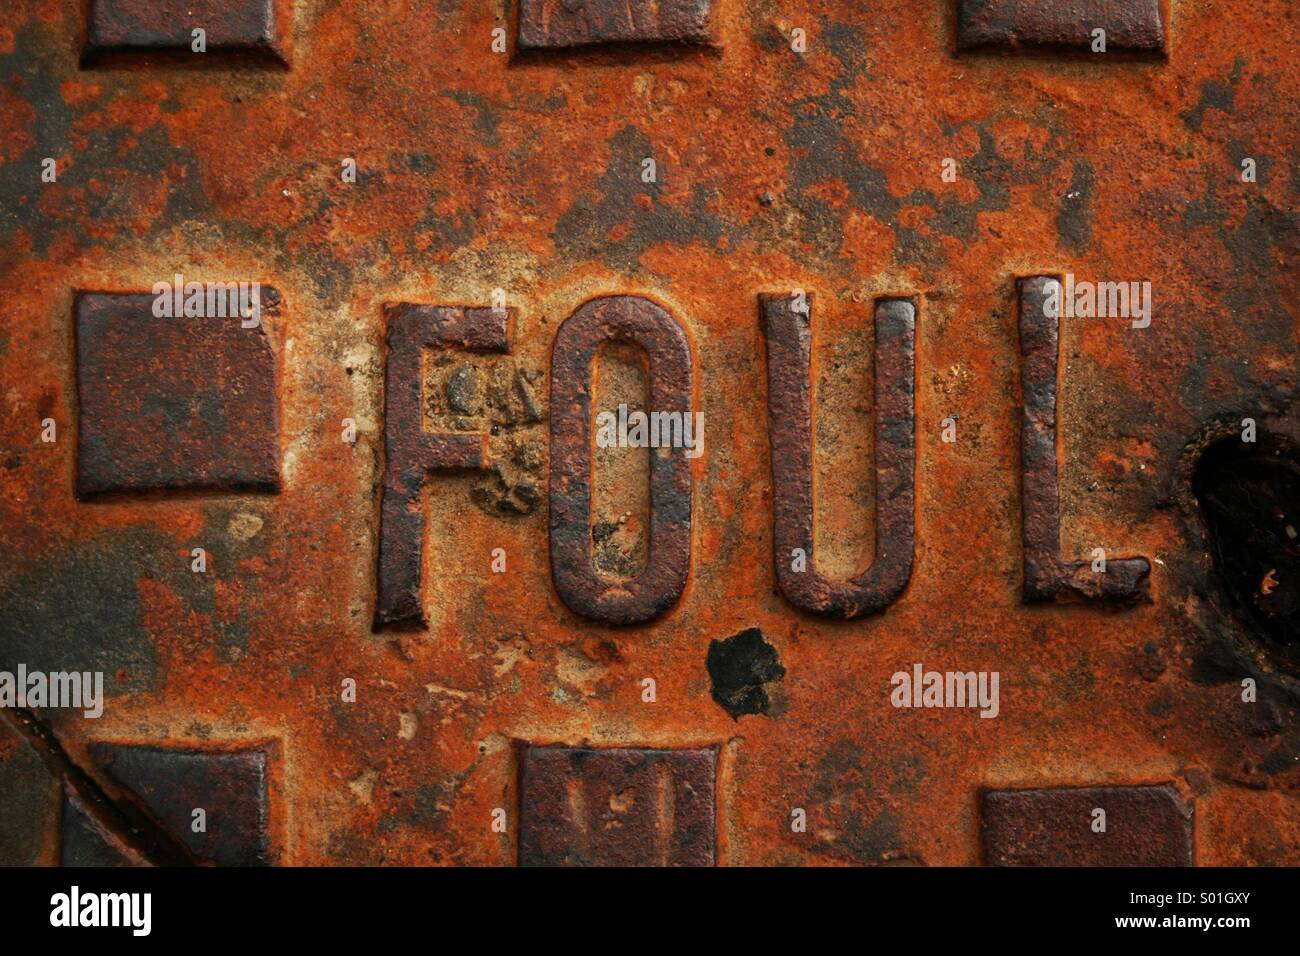 Rusty foul waste manhole cover - Stock Image